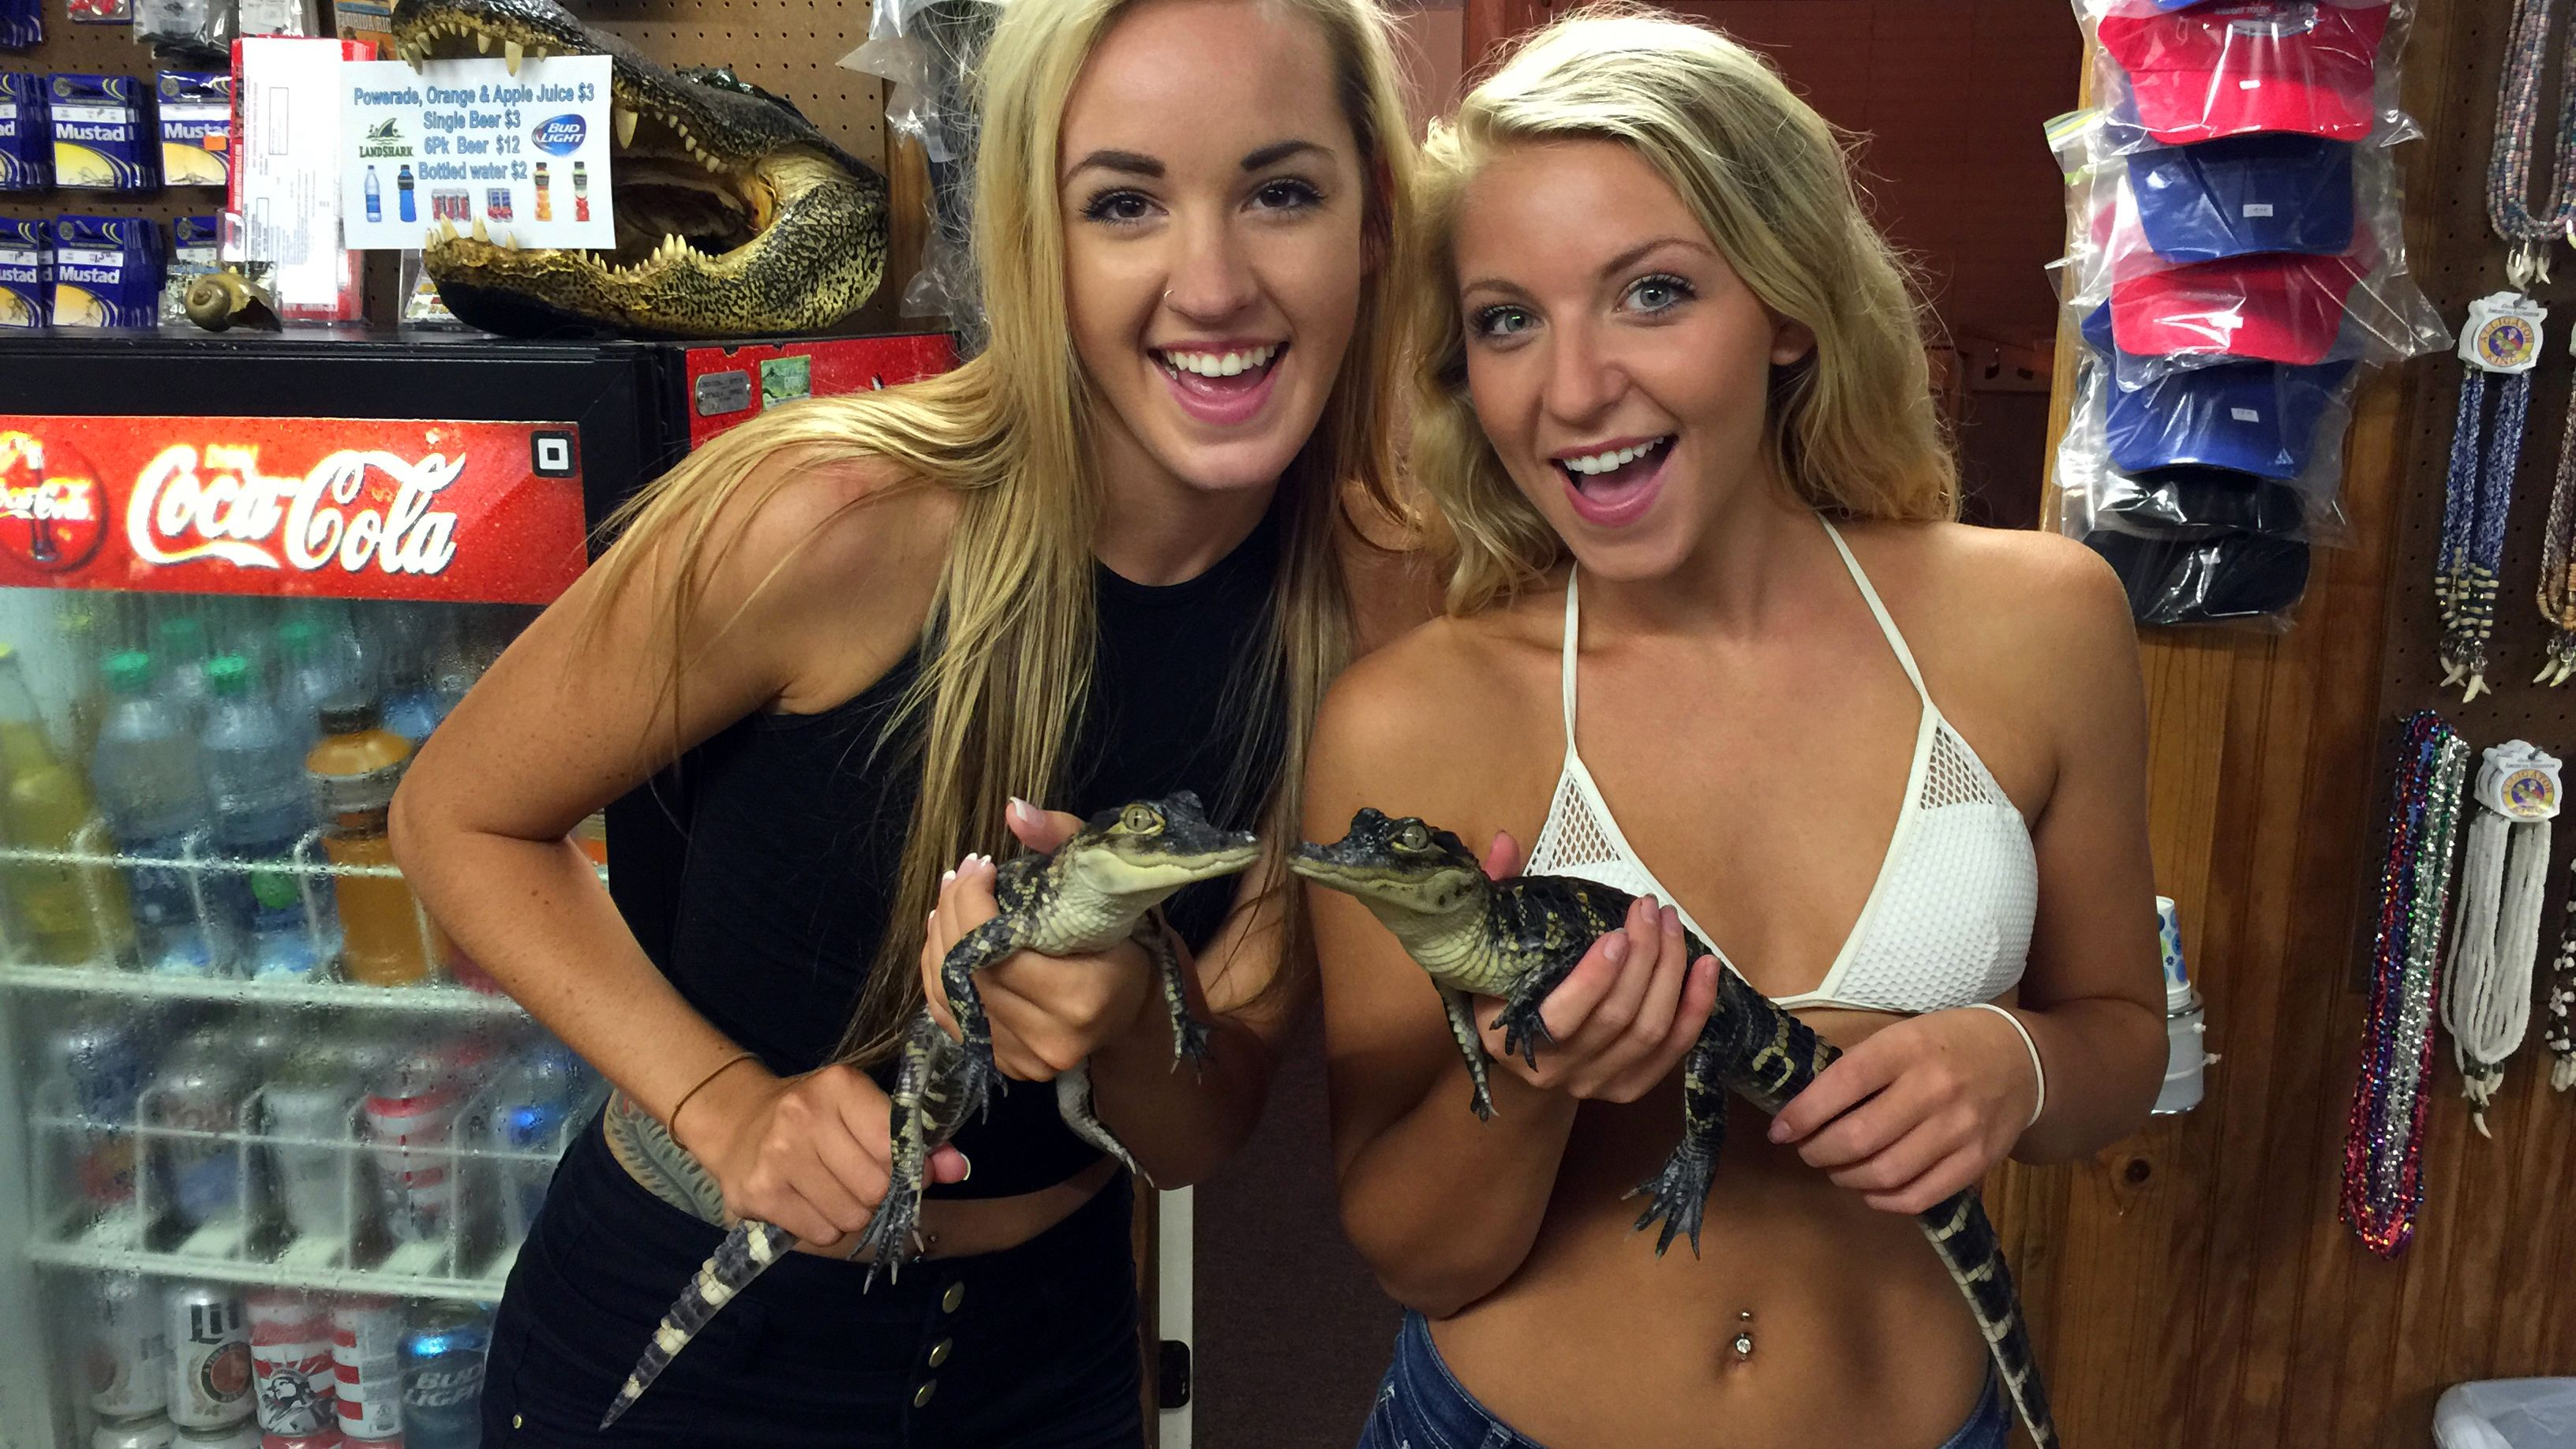 Two women holding baby Alligators